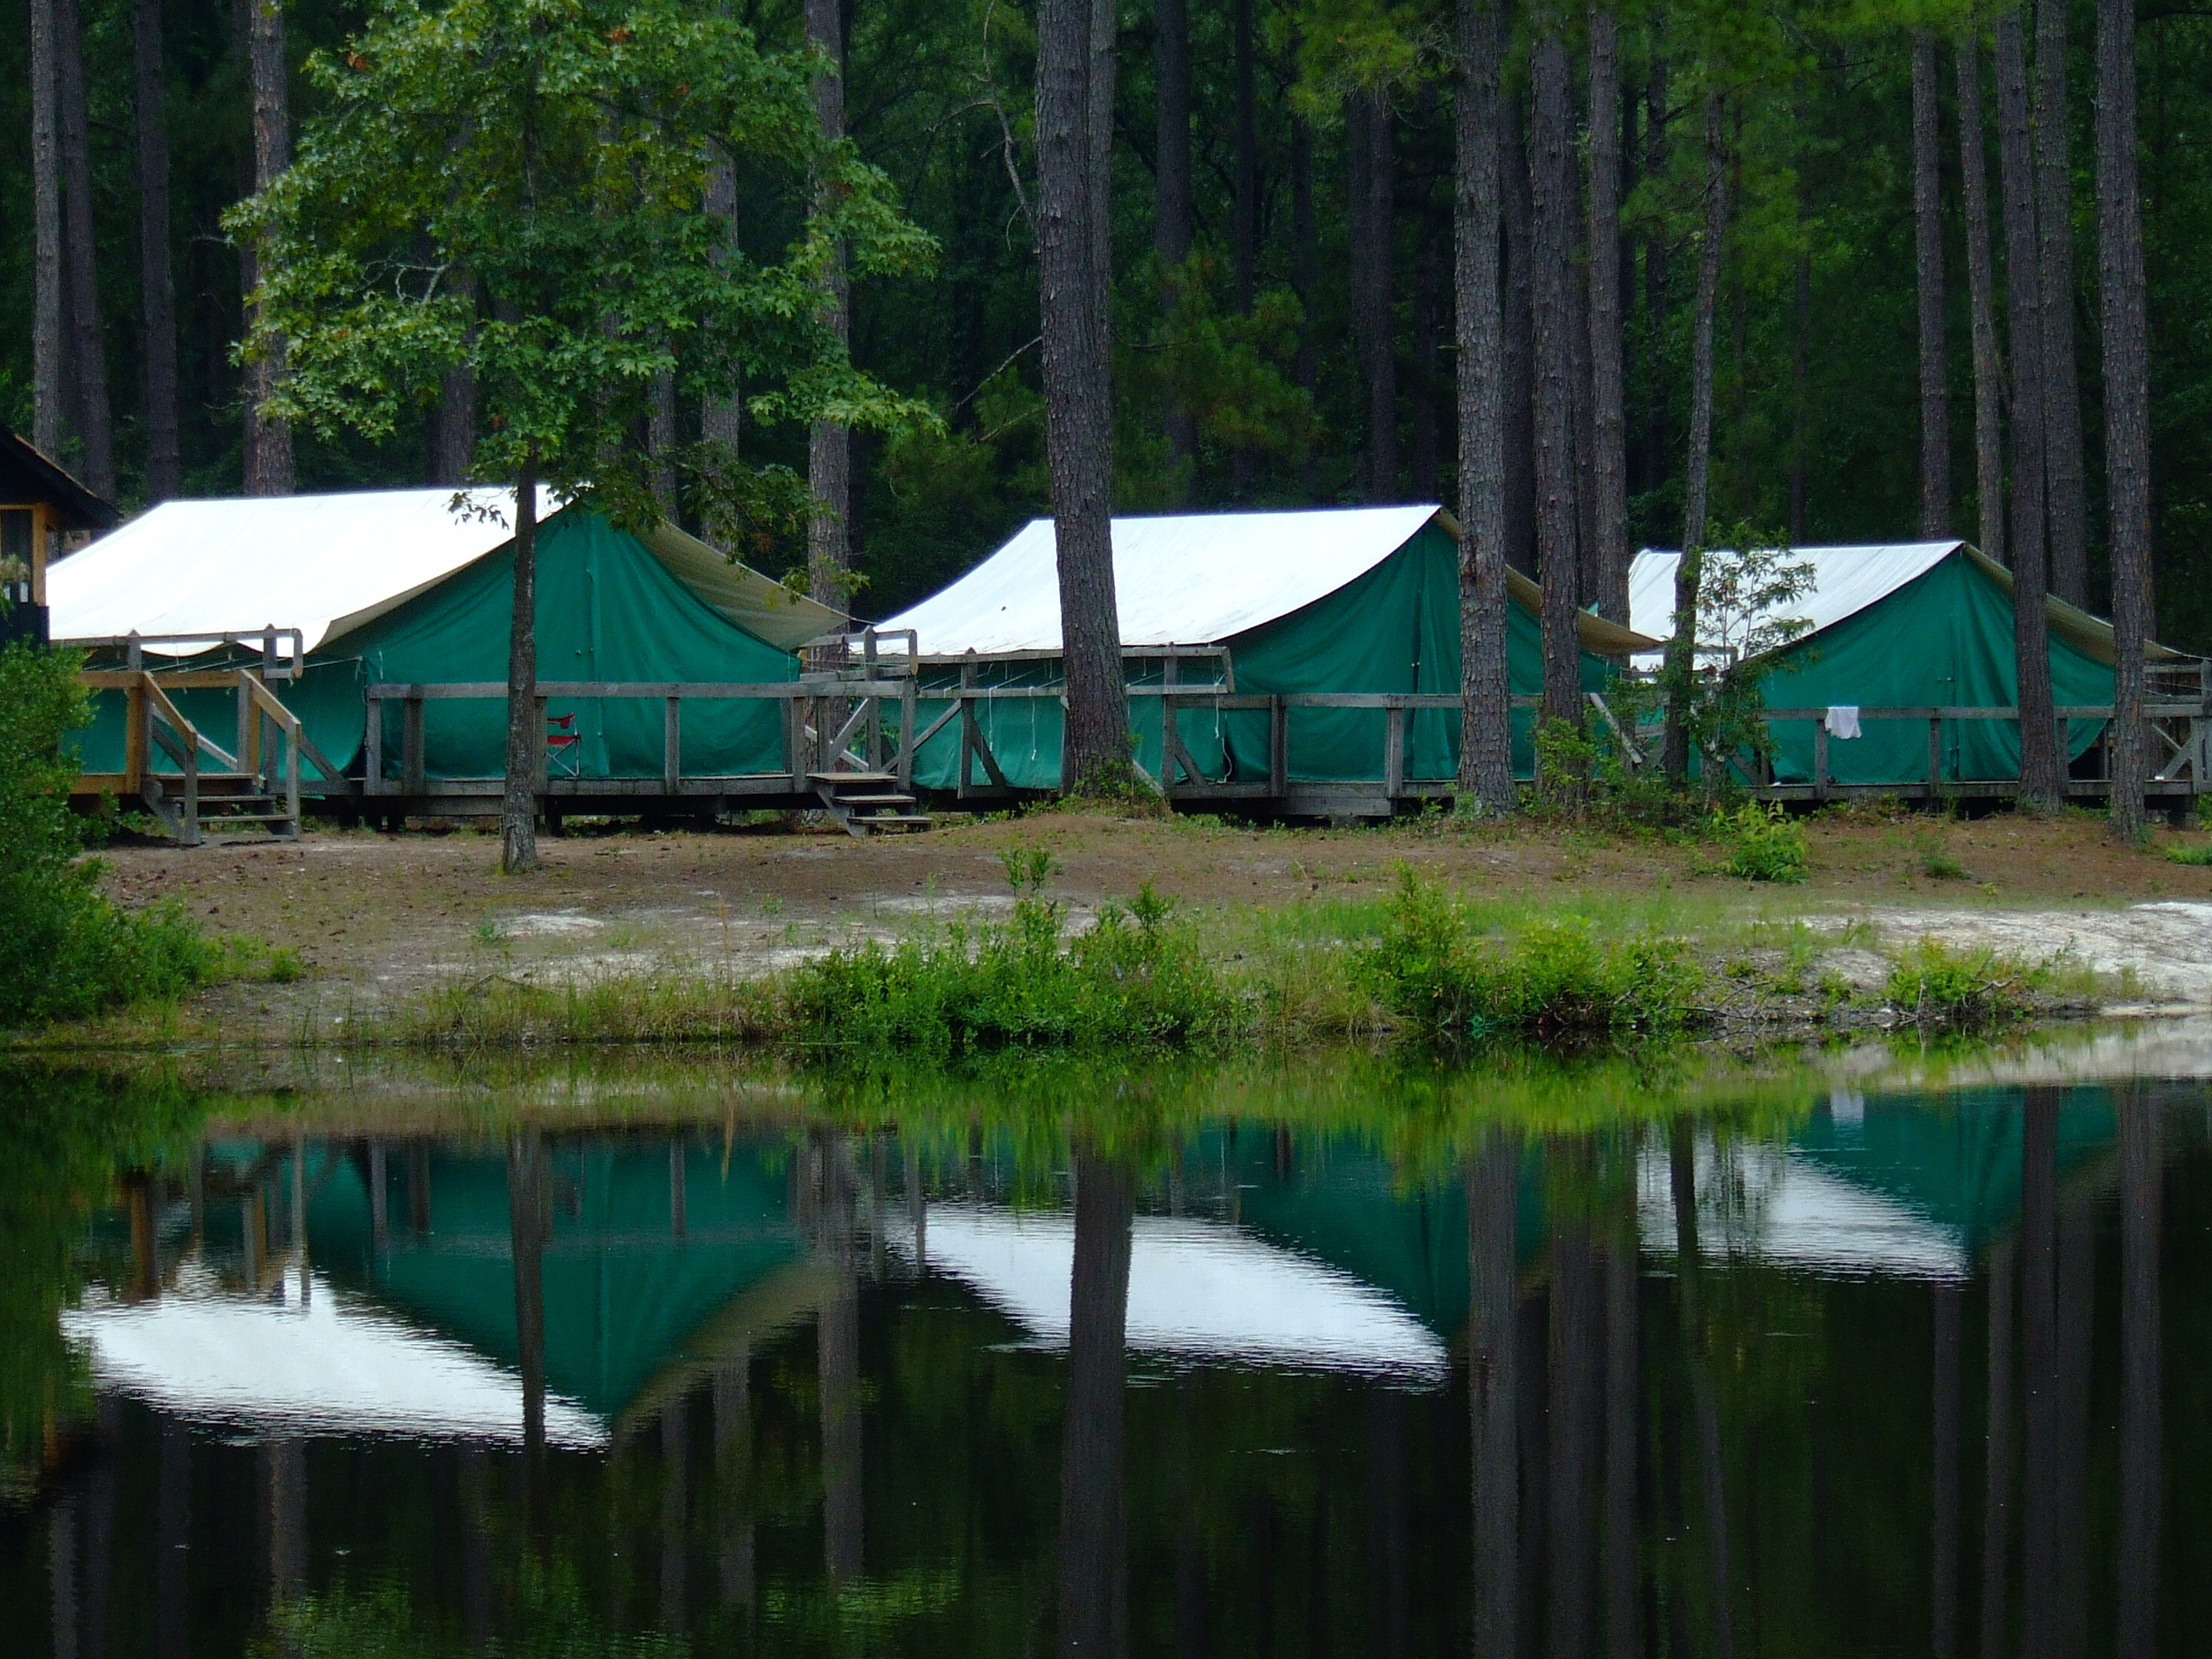 Youth Camp Tents